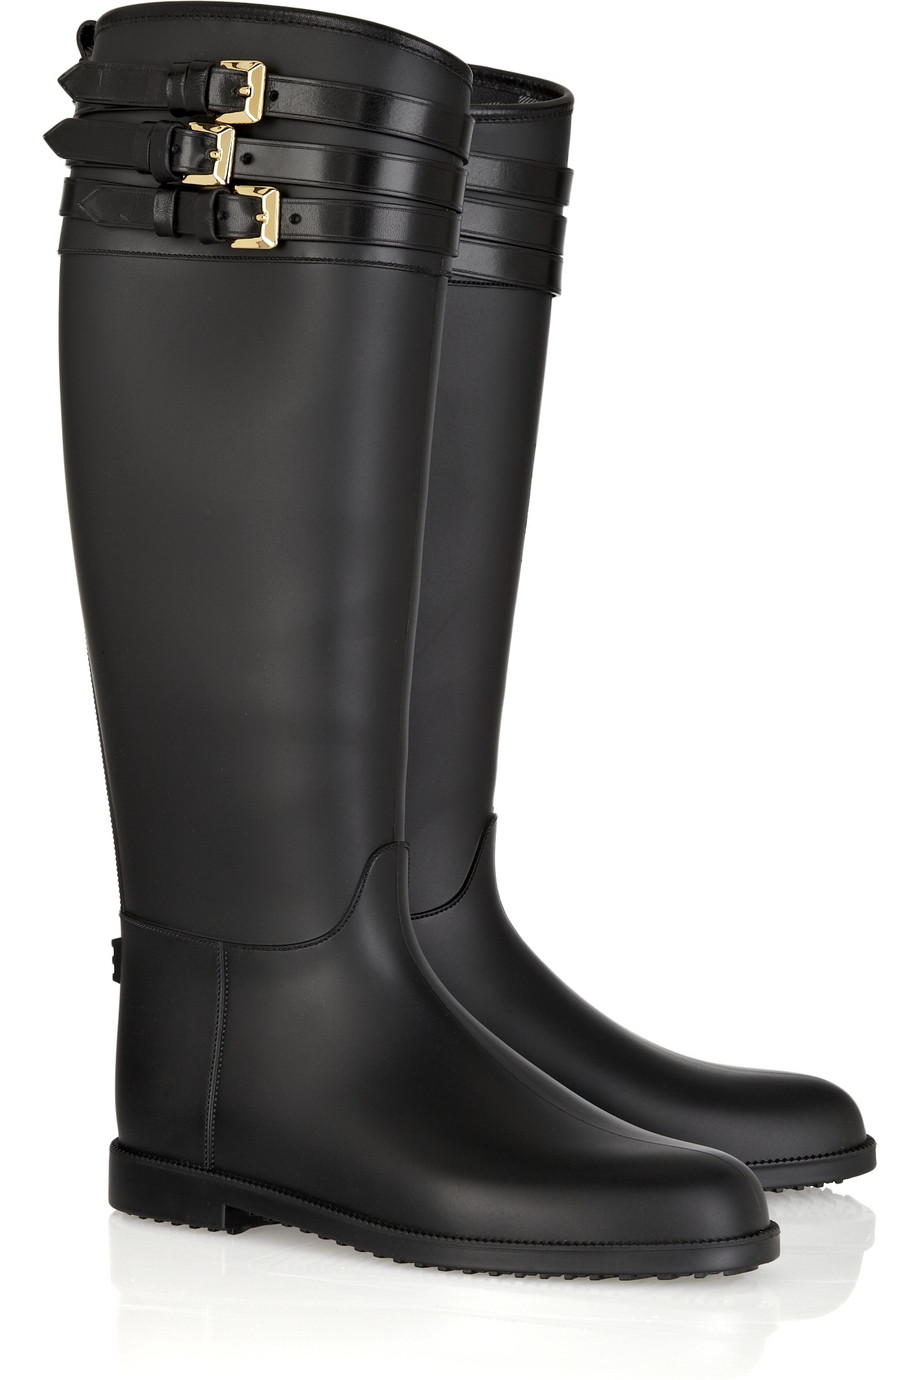 Burberry Buckle-embellished Rubber Boots in Black